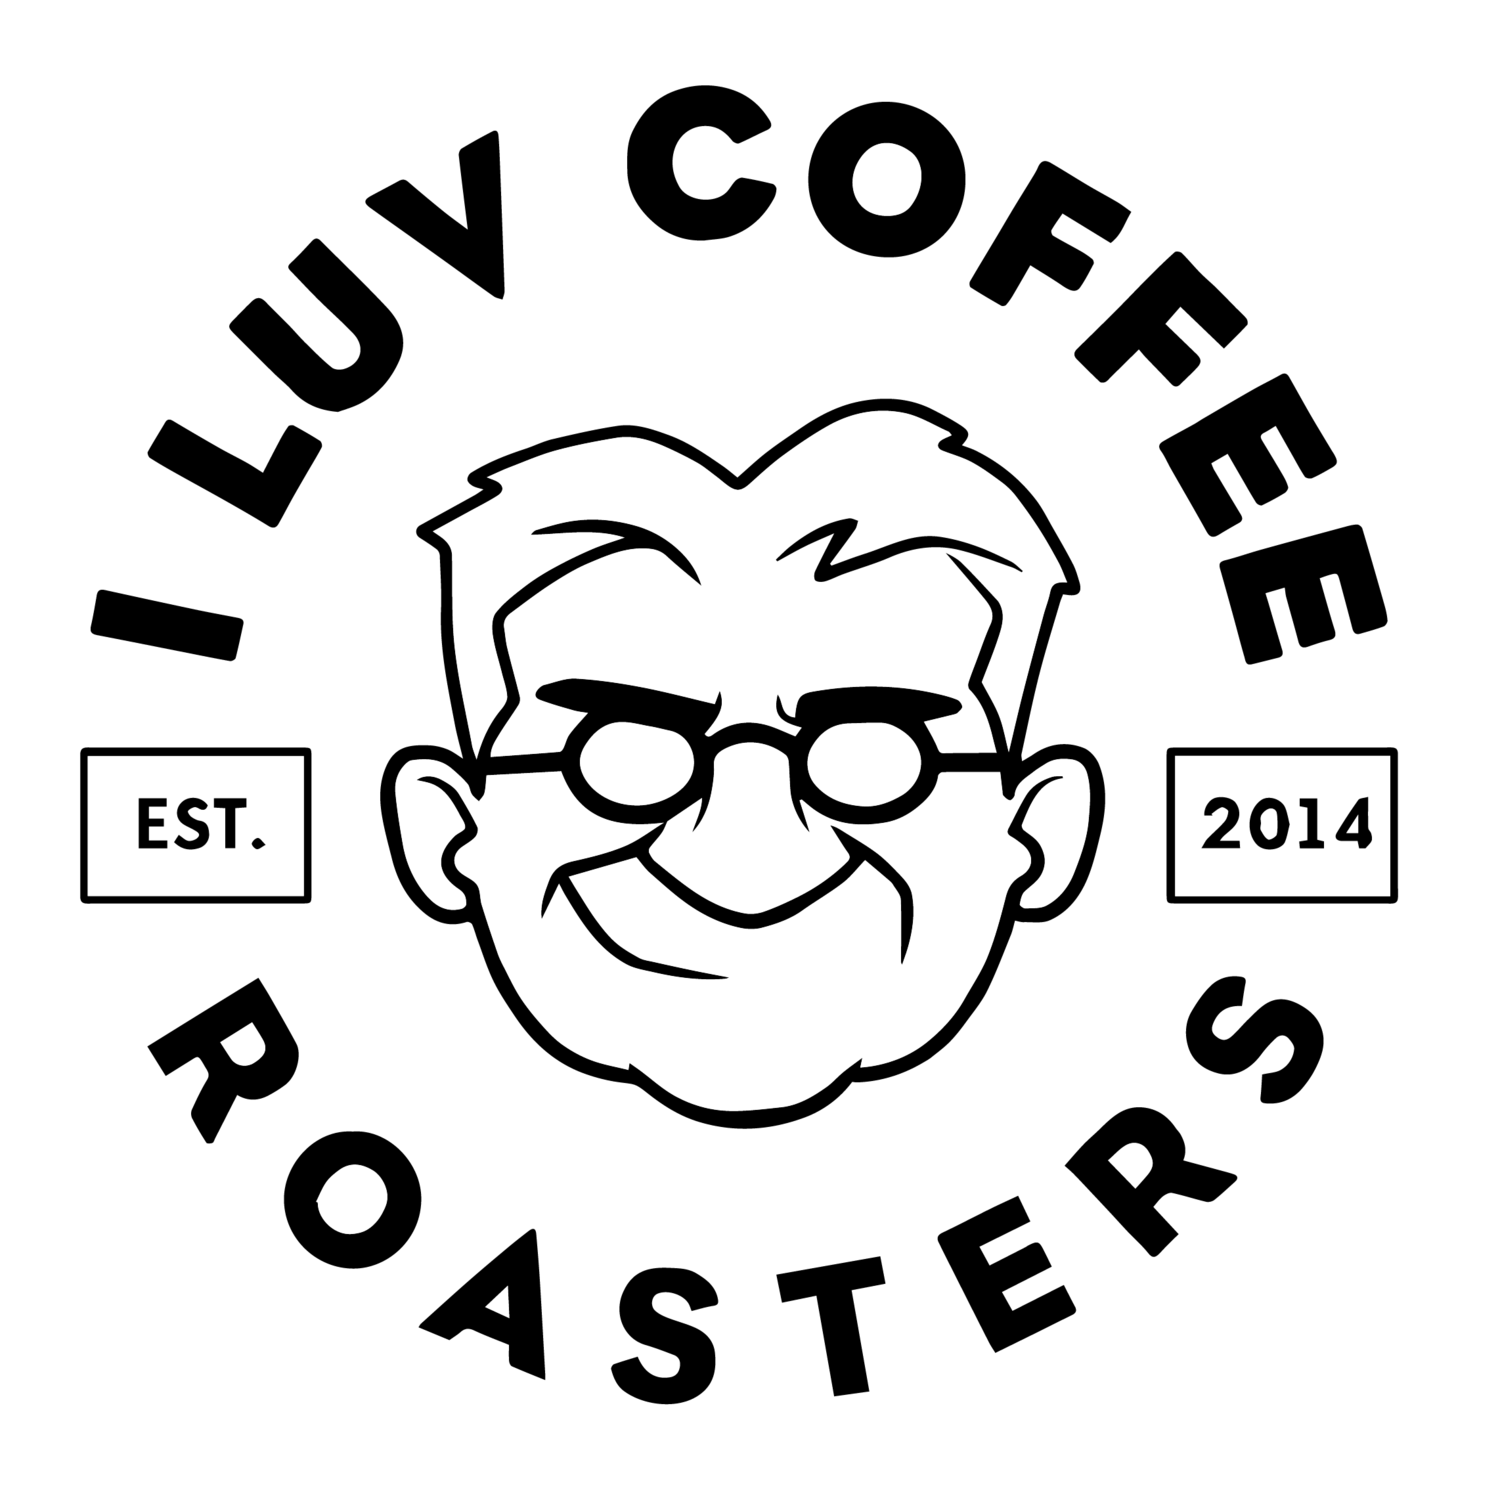 I LUV COFFEE ROASTERS